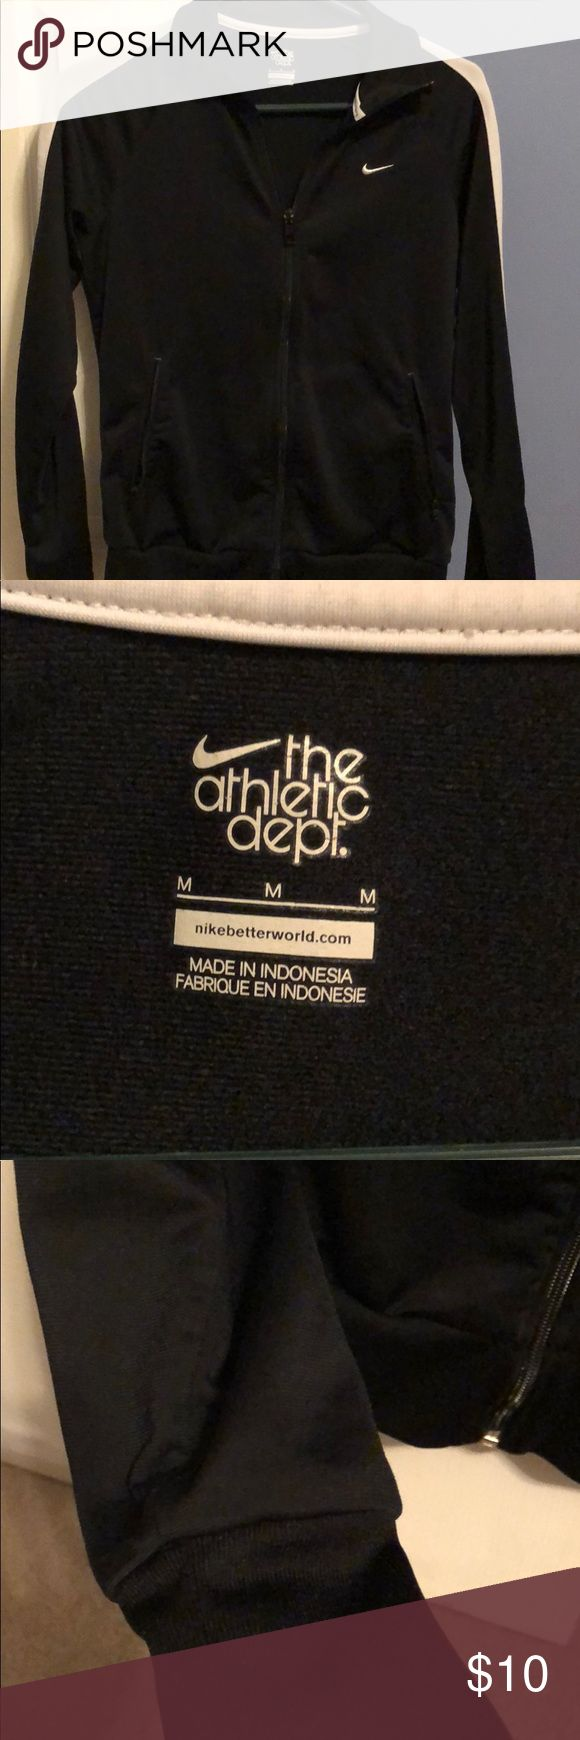 Black Nike Track Jacket Women's Nike Track Jacket , great for the gym ! Worn only a handful of times , no stains, rips or marks. Like new condition! Nike Sweaters